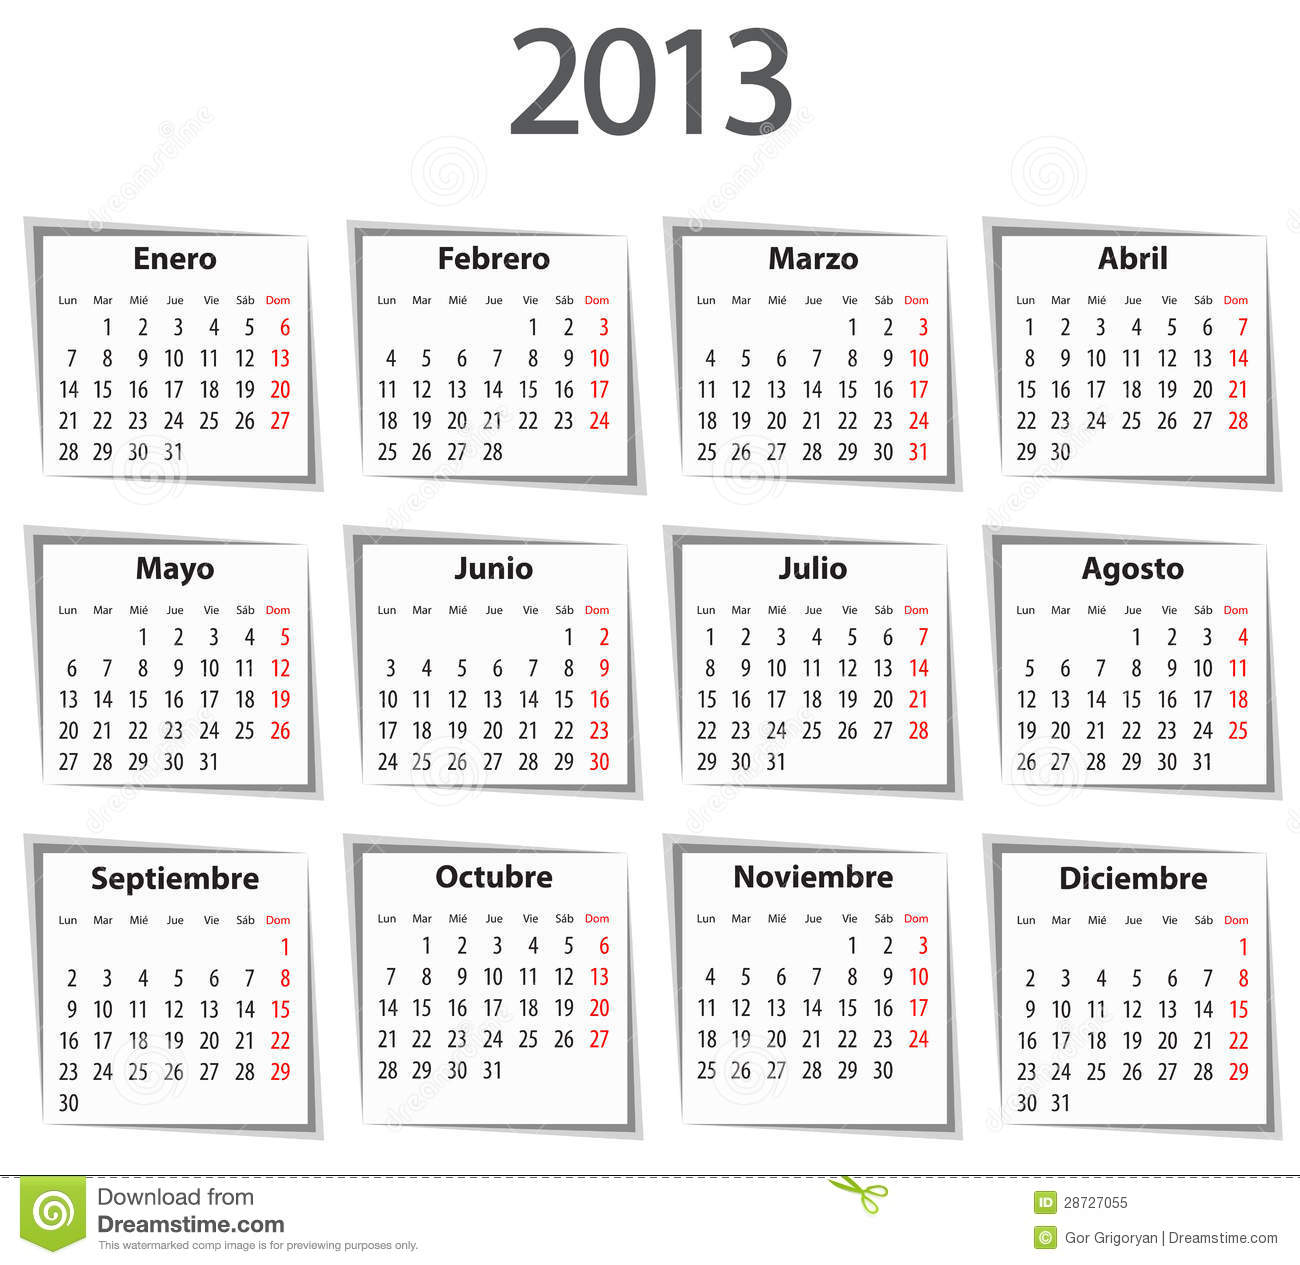 2013 Spanish Calendar Template Royalty Free Cliparts Vectors And